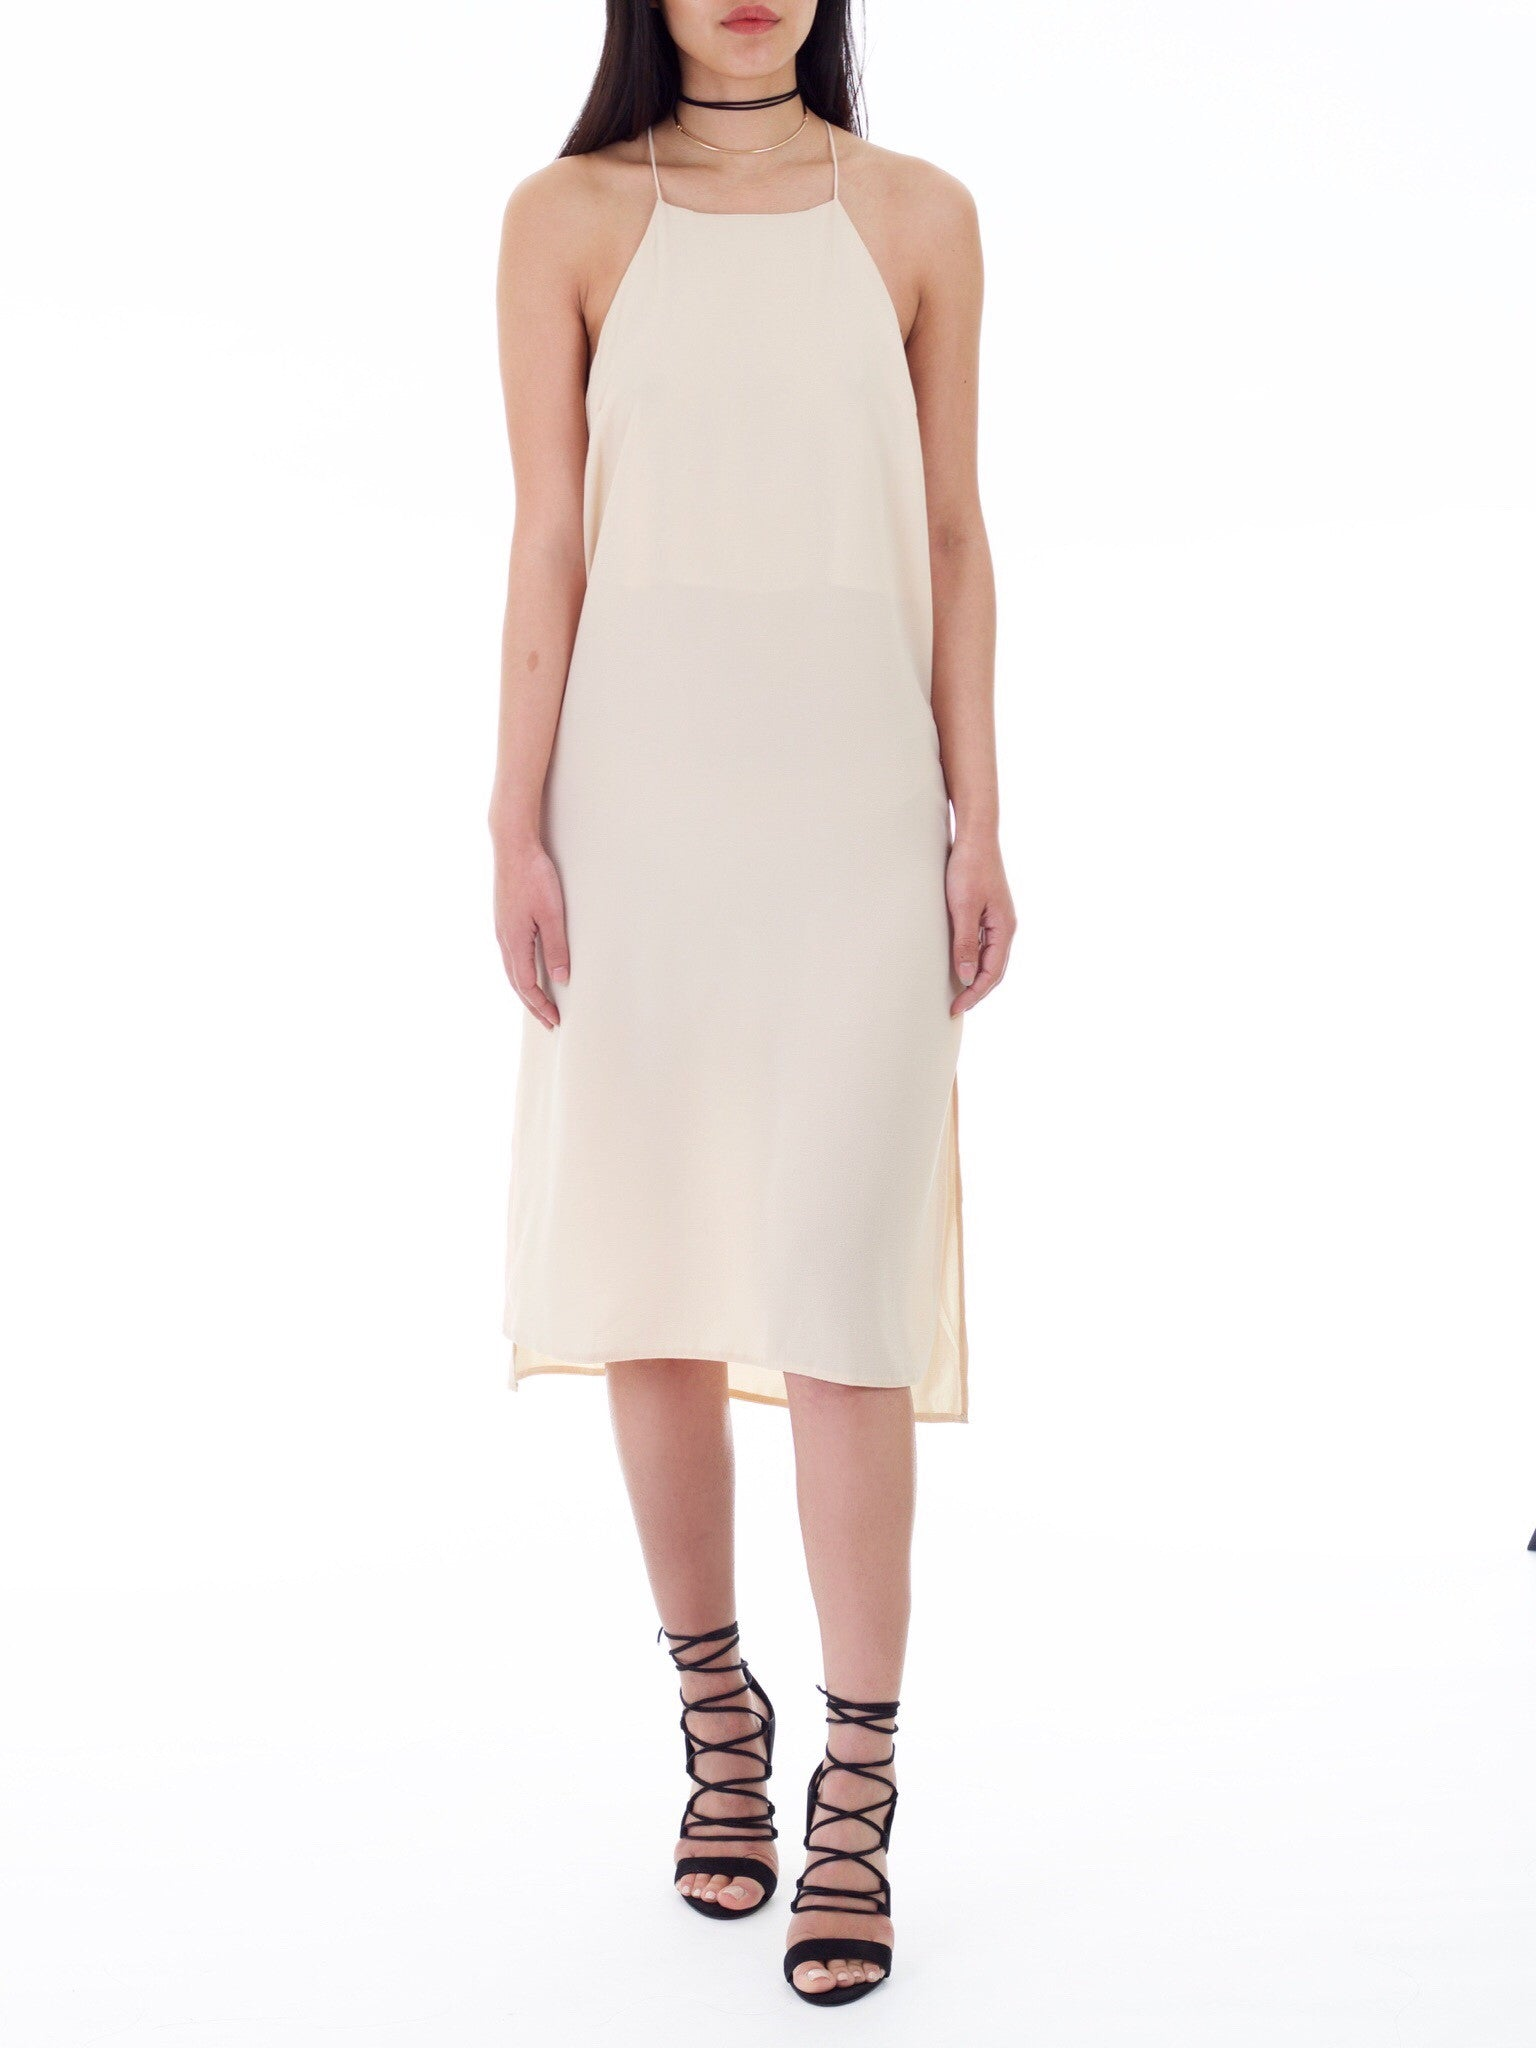 Ivory Side Slit Slip Dress - PRADEGAL